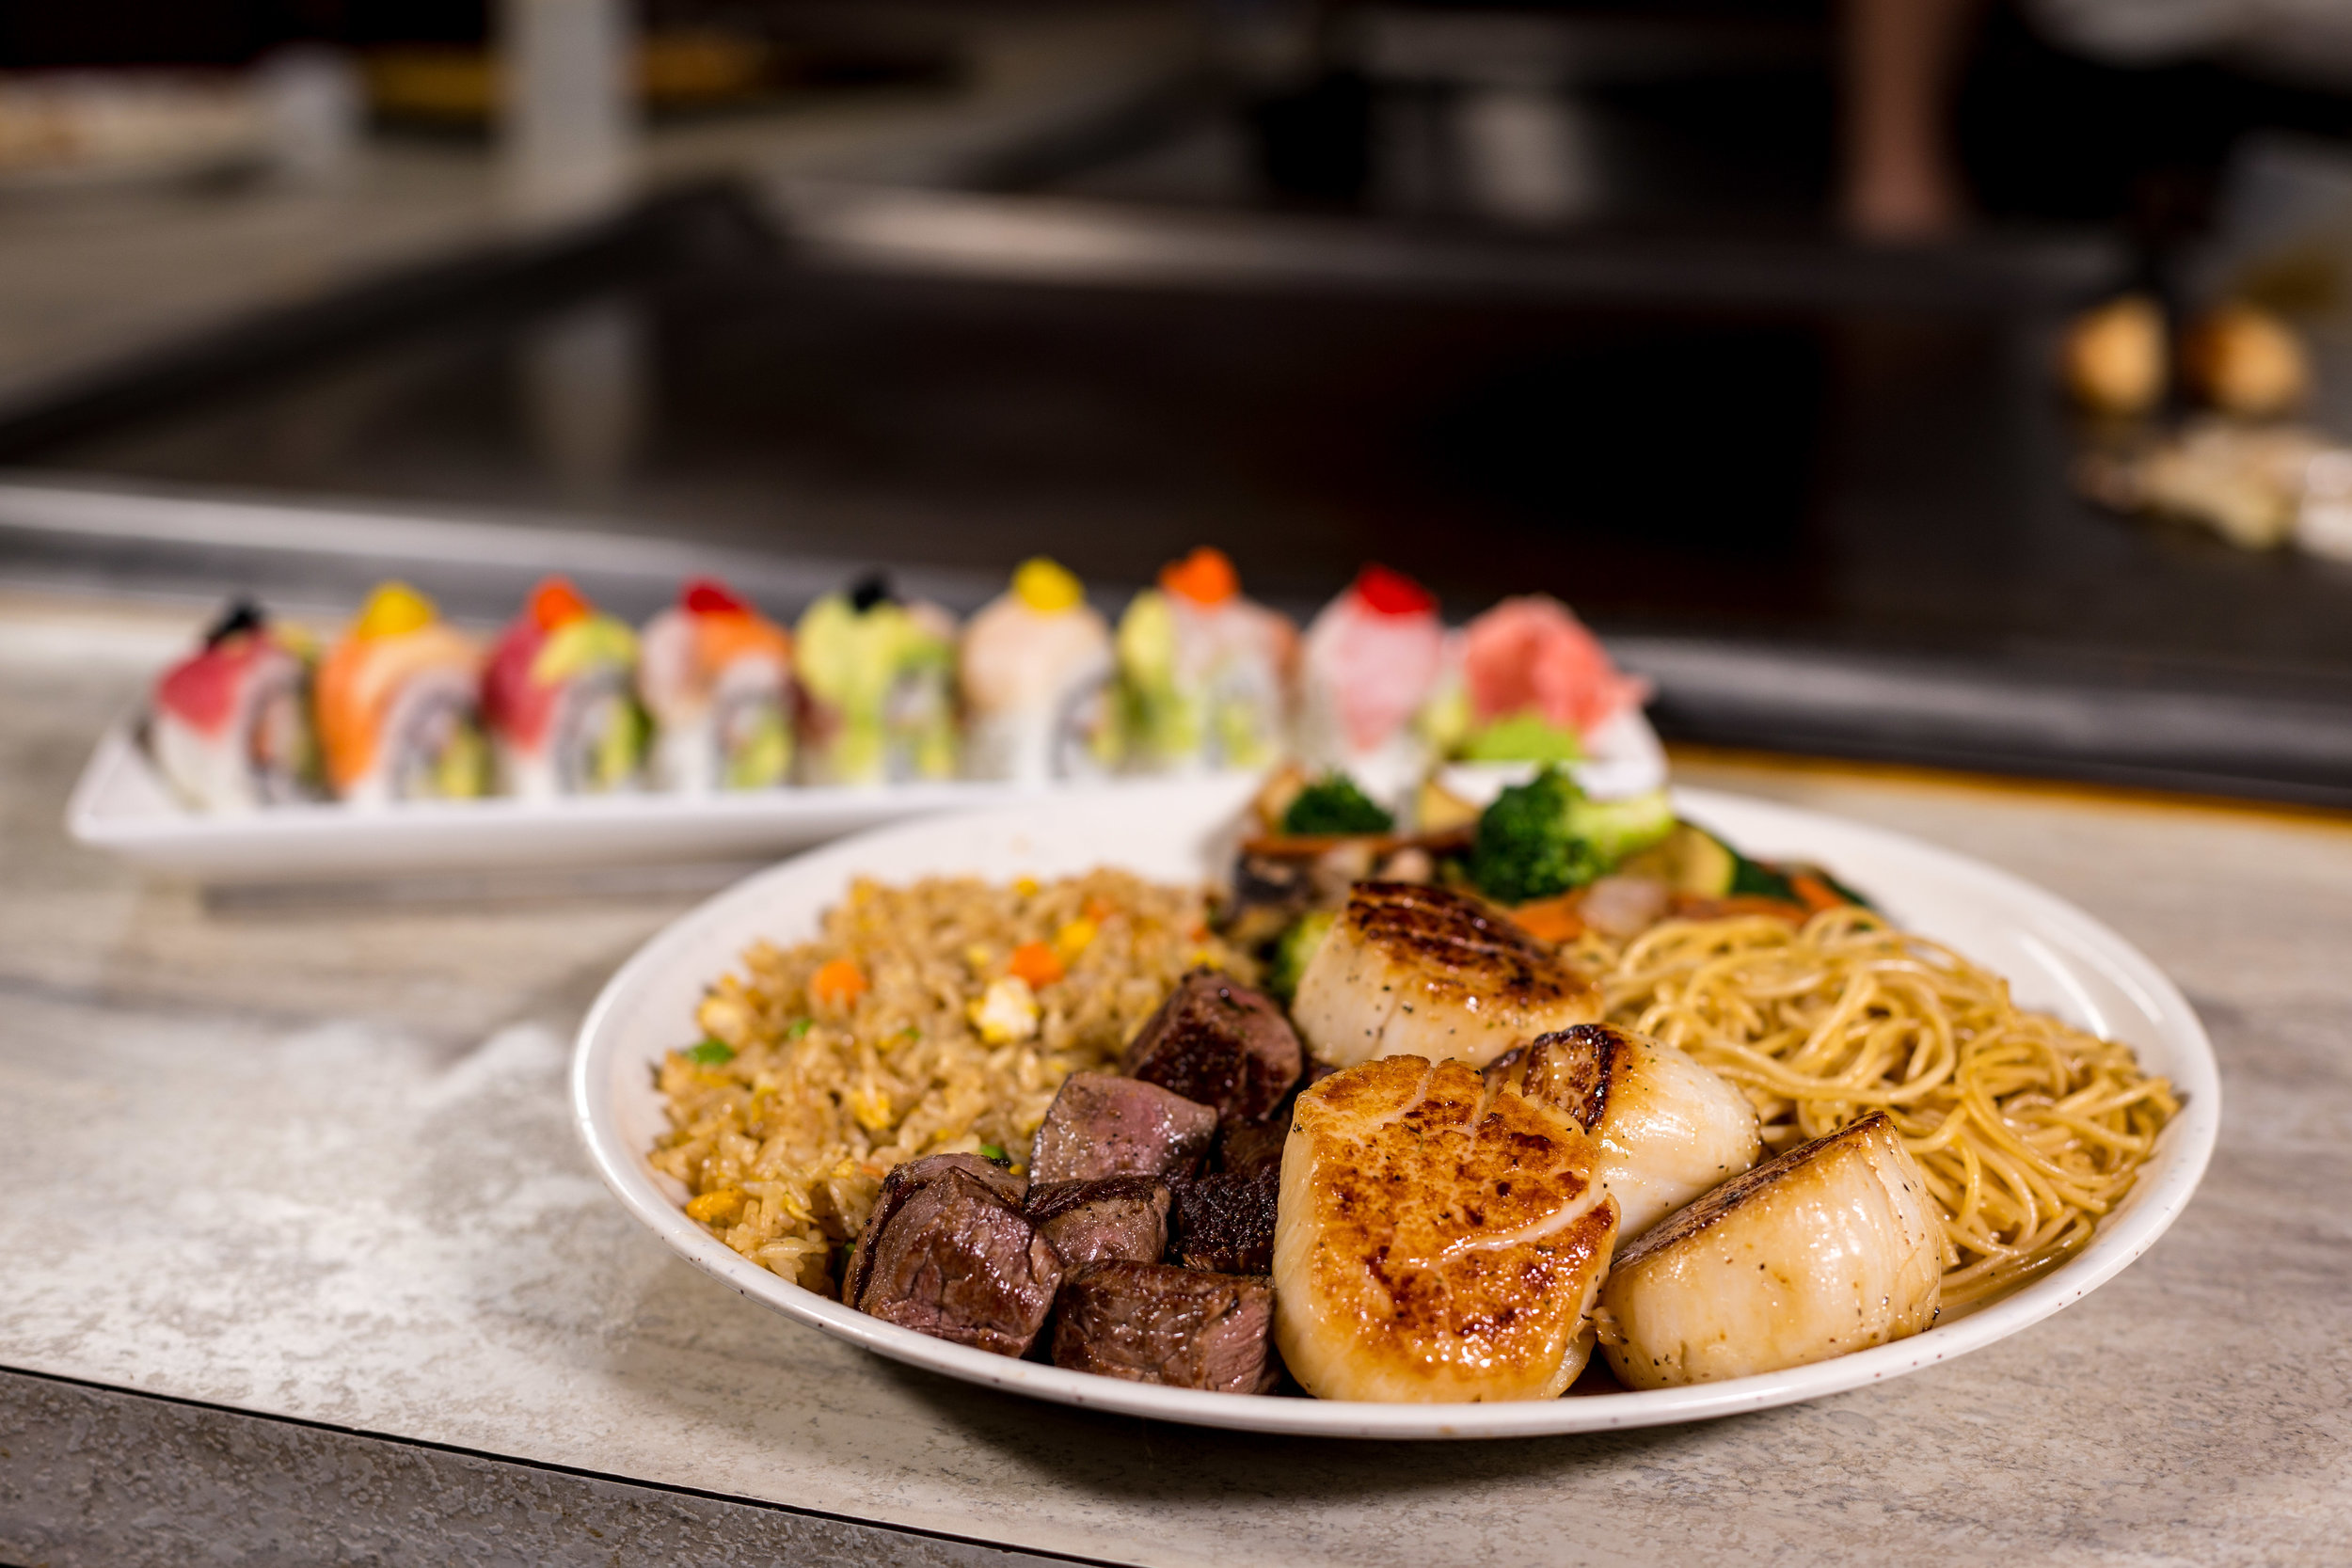 Seared scallops and diced steak dish with fried rice and a sushi plate